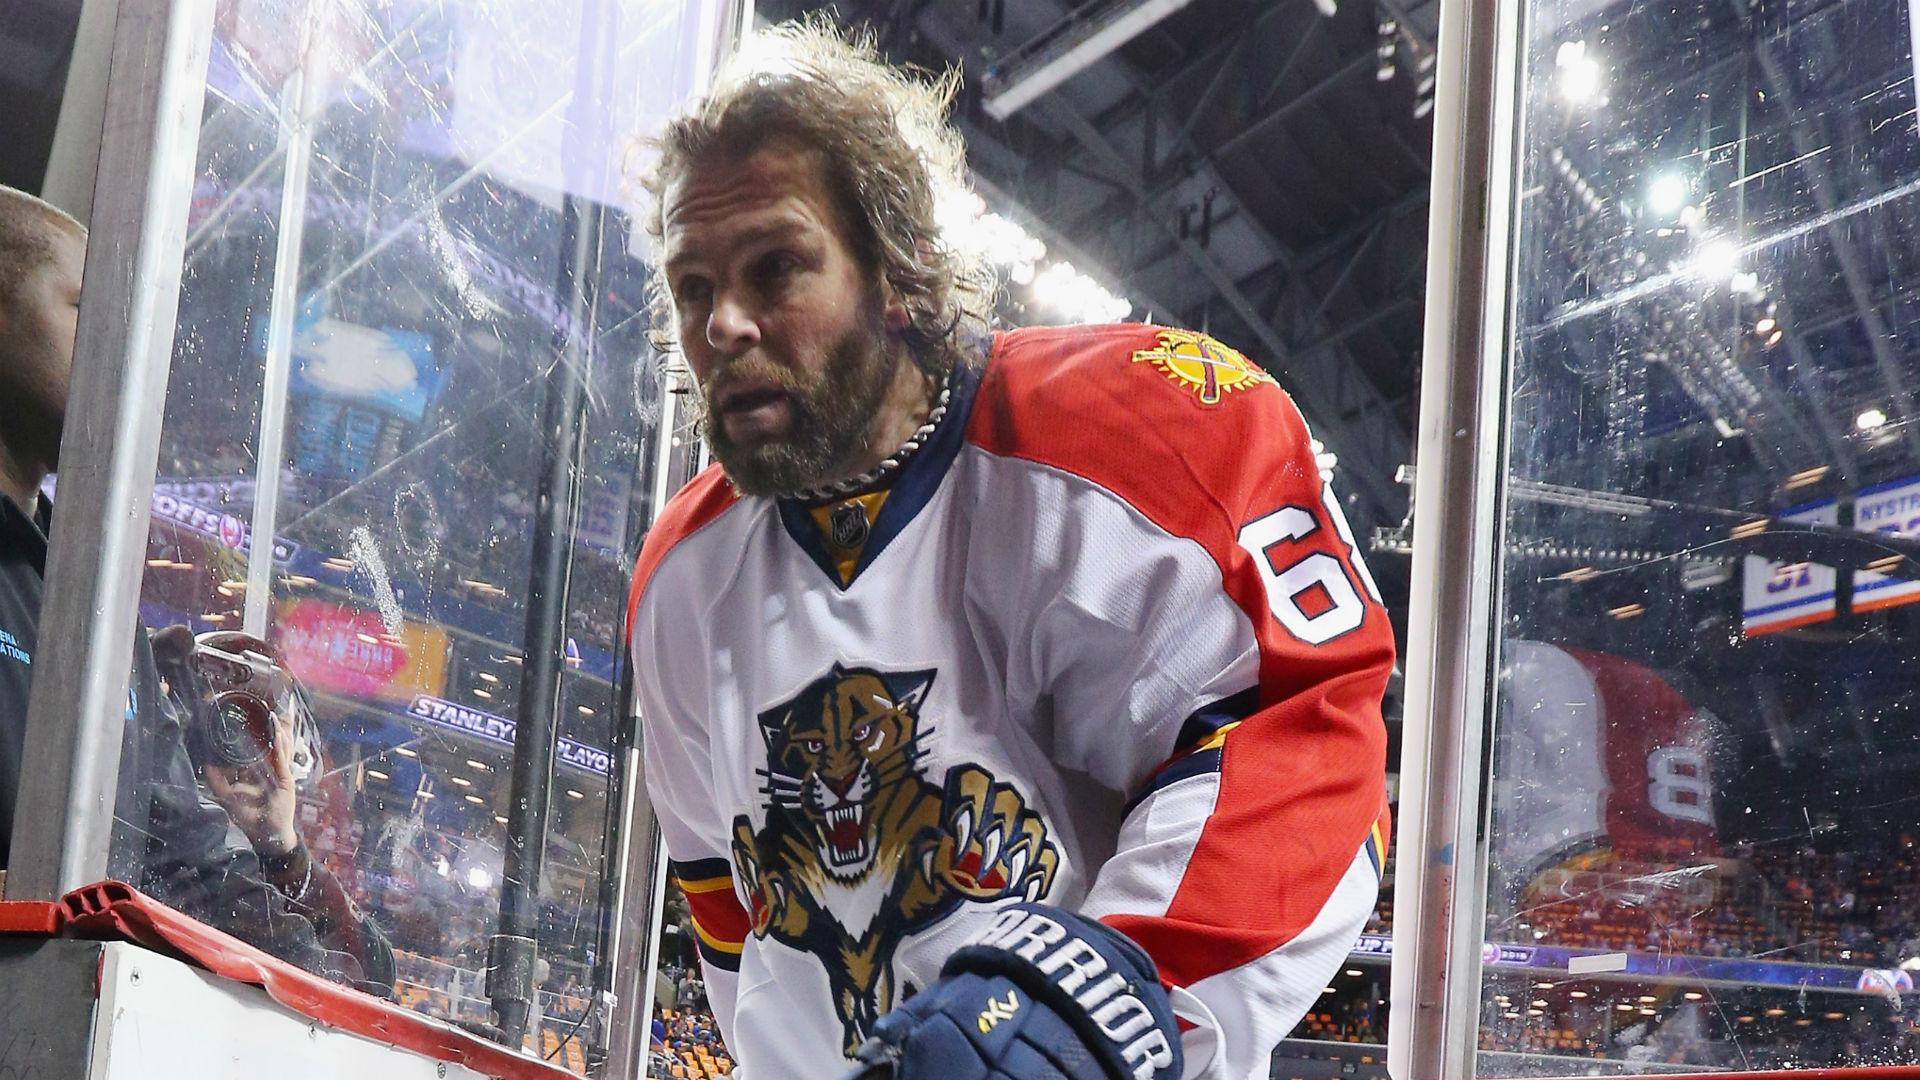 What is Jaromir Jagr worth in 2016